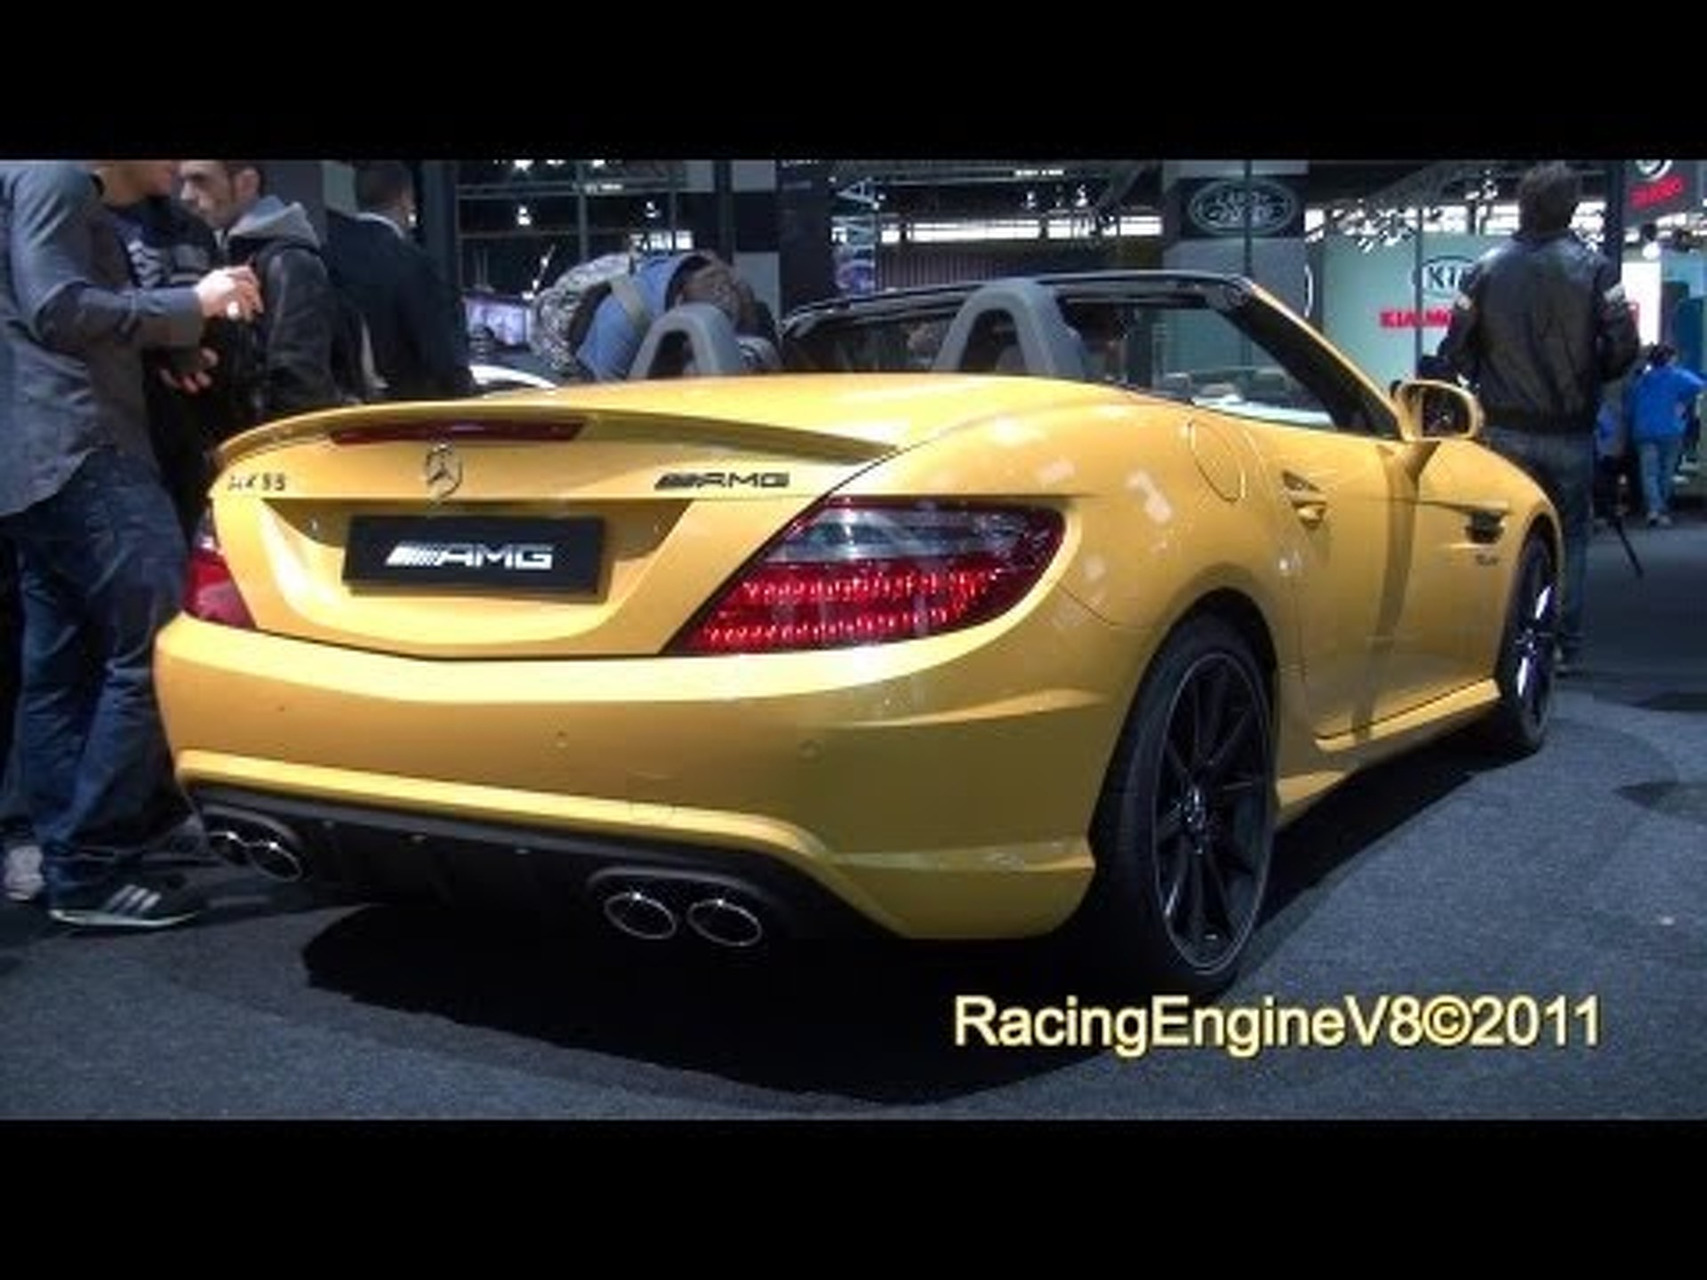 2012 Mercedes-Benz SLK55 AMG Streetfighter Yellow Edition